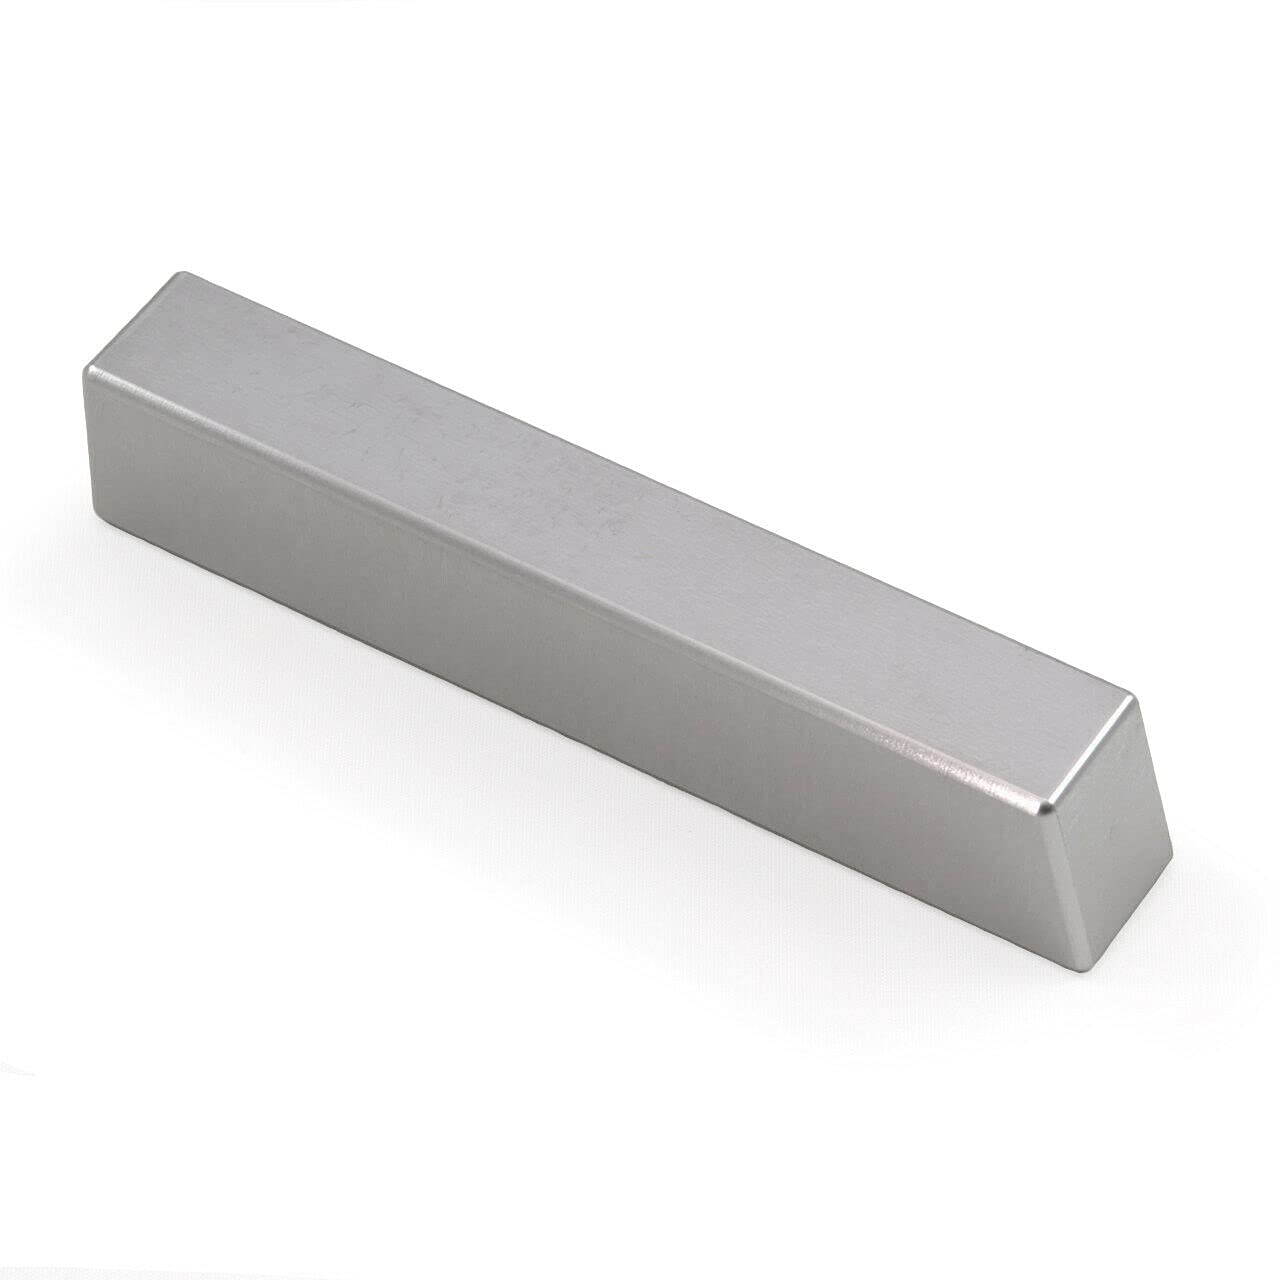 1 Pc Very popular! of Tungsten Bucking Bar Angled lbs BB-14: 1.20 Face 0.63